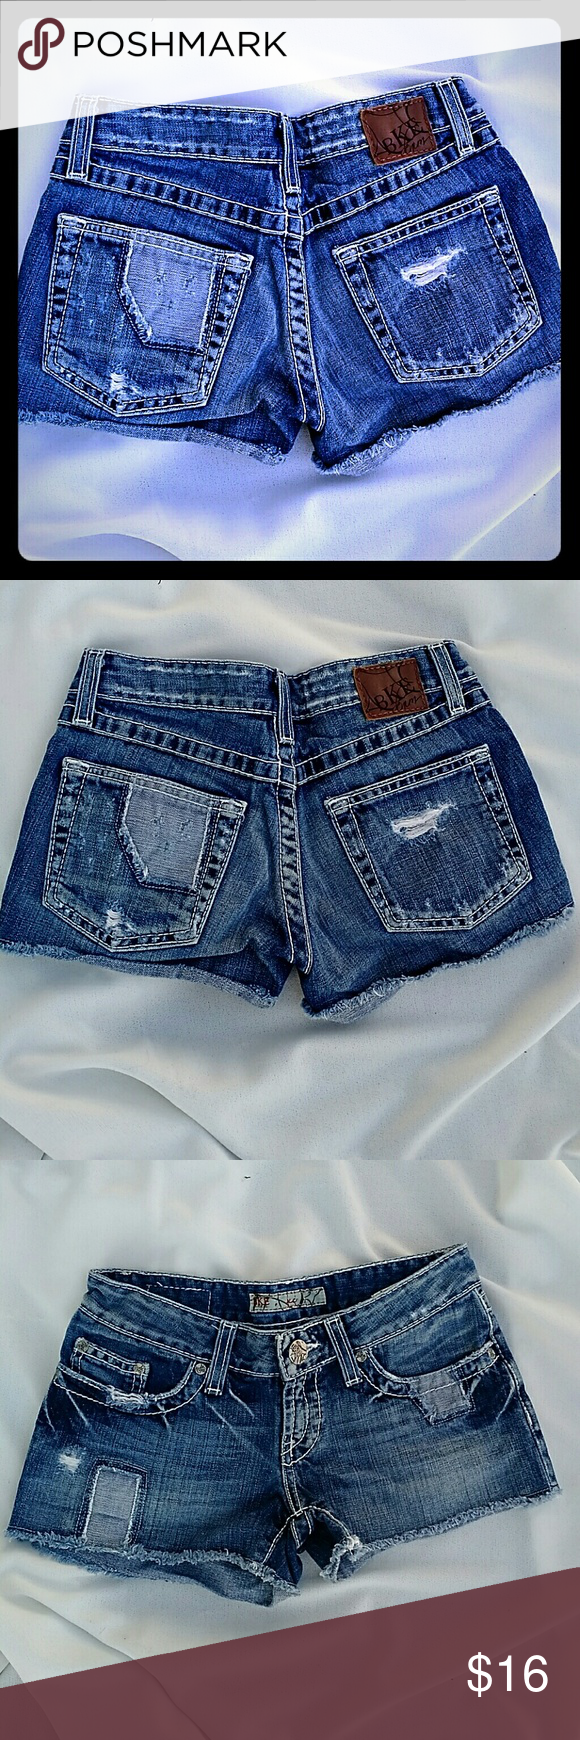 Women's BKE Denim Alli Shorts Buckle Sz 24 Women's BKE Denim Shorts Style: Alli Size 24 Factory-made distressing and stitched patchwork. Medium wash. Excellent condition! From a smoke-free and pet-free home. BKE Shorts Jean Shorts